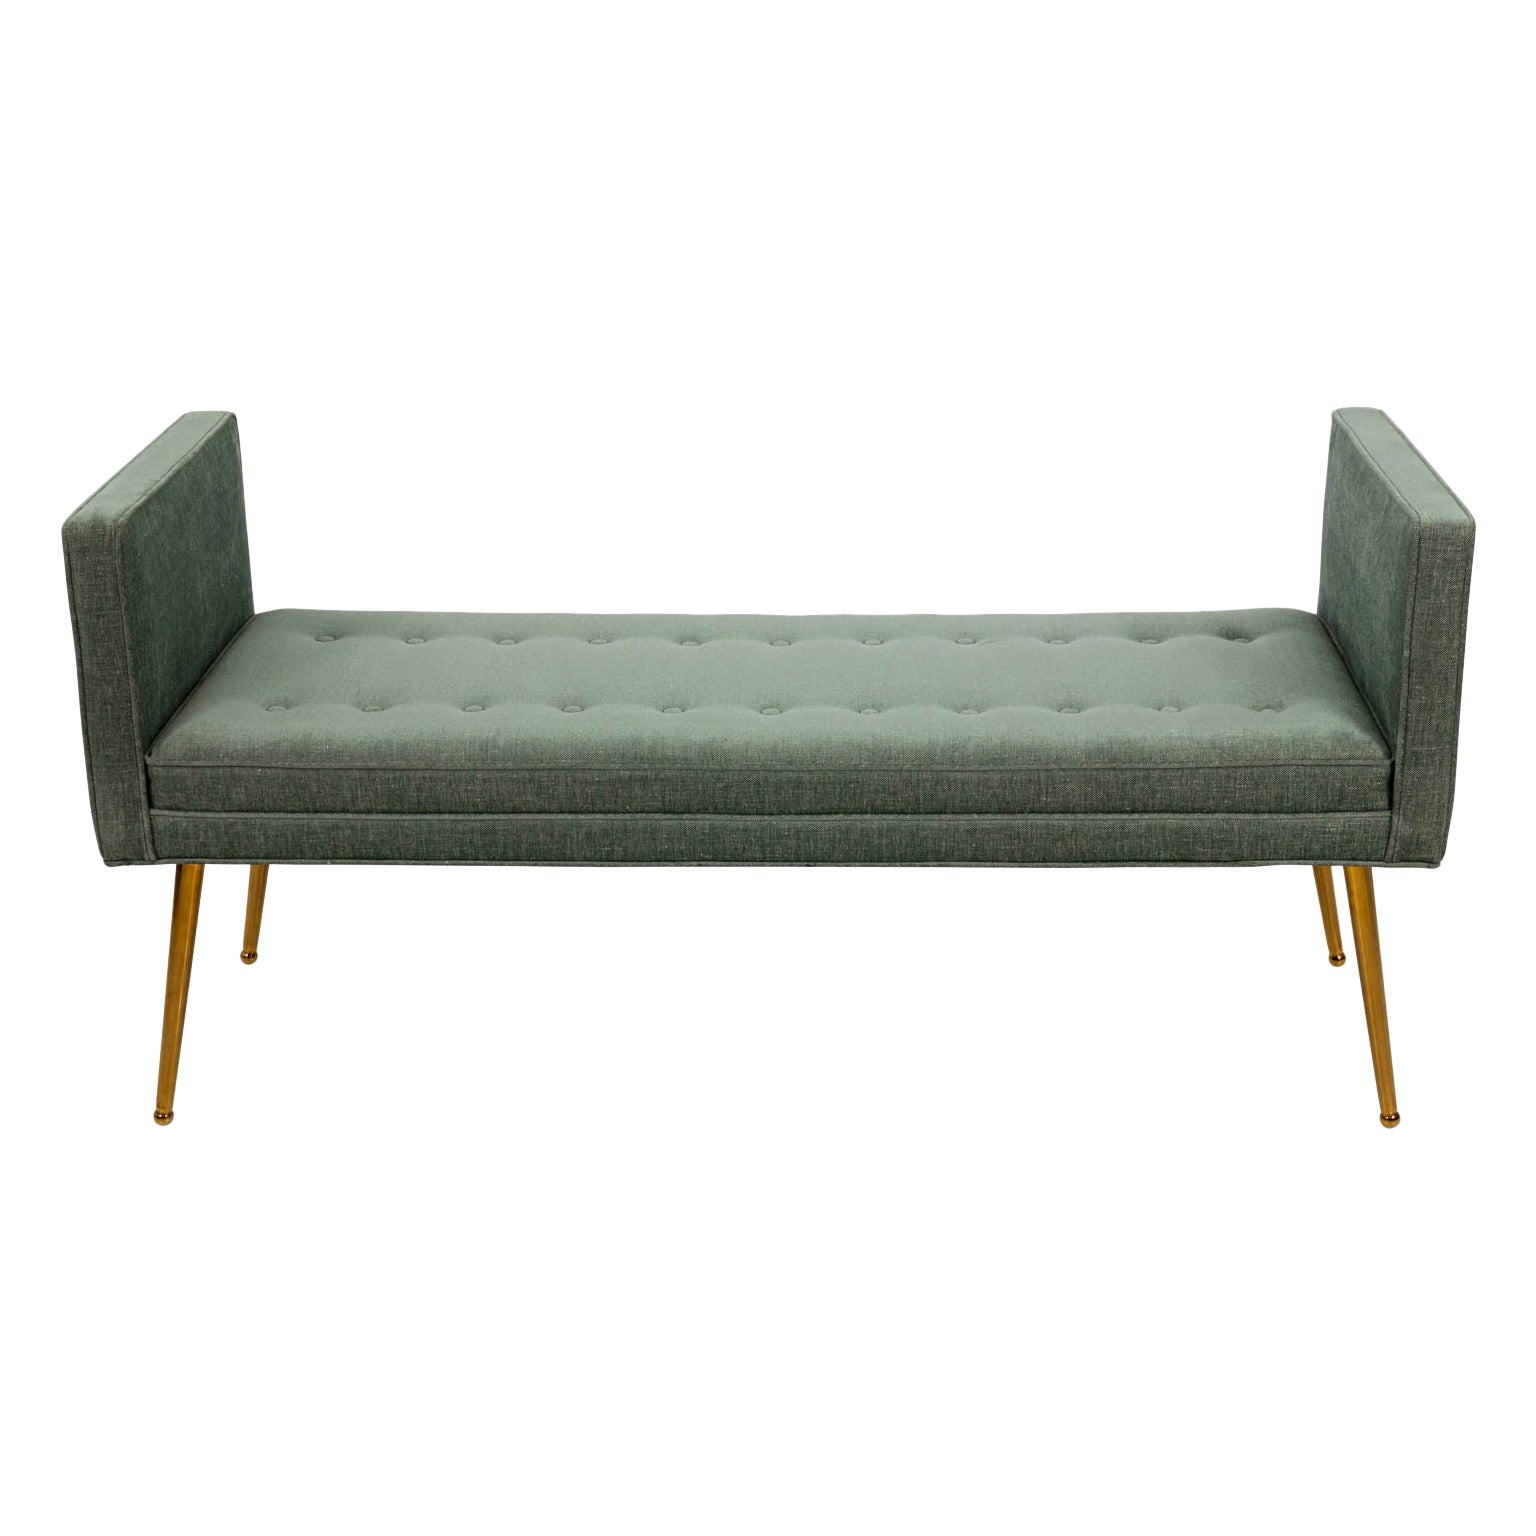 Midcentury Style Upholstered Bench